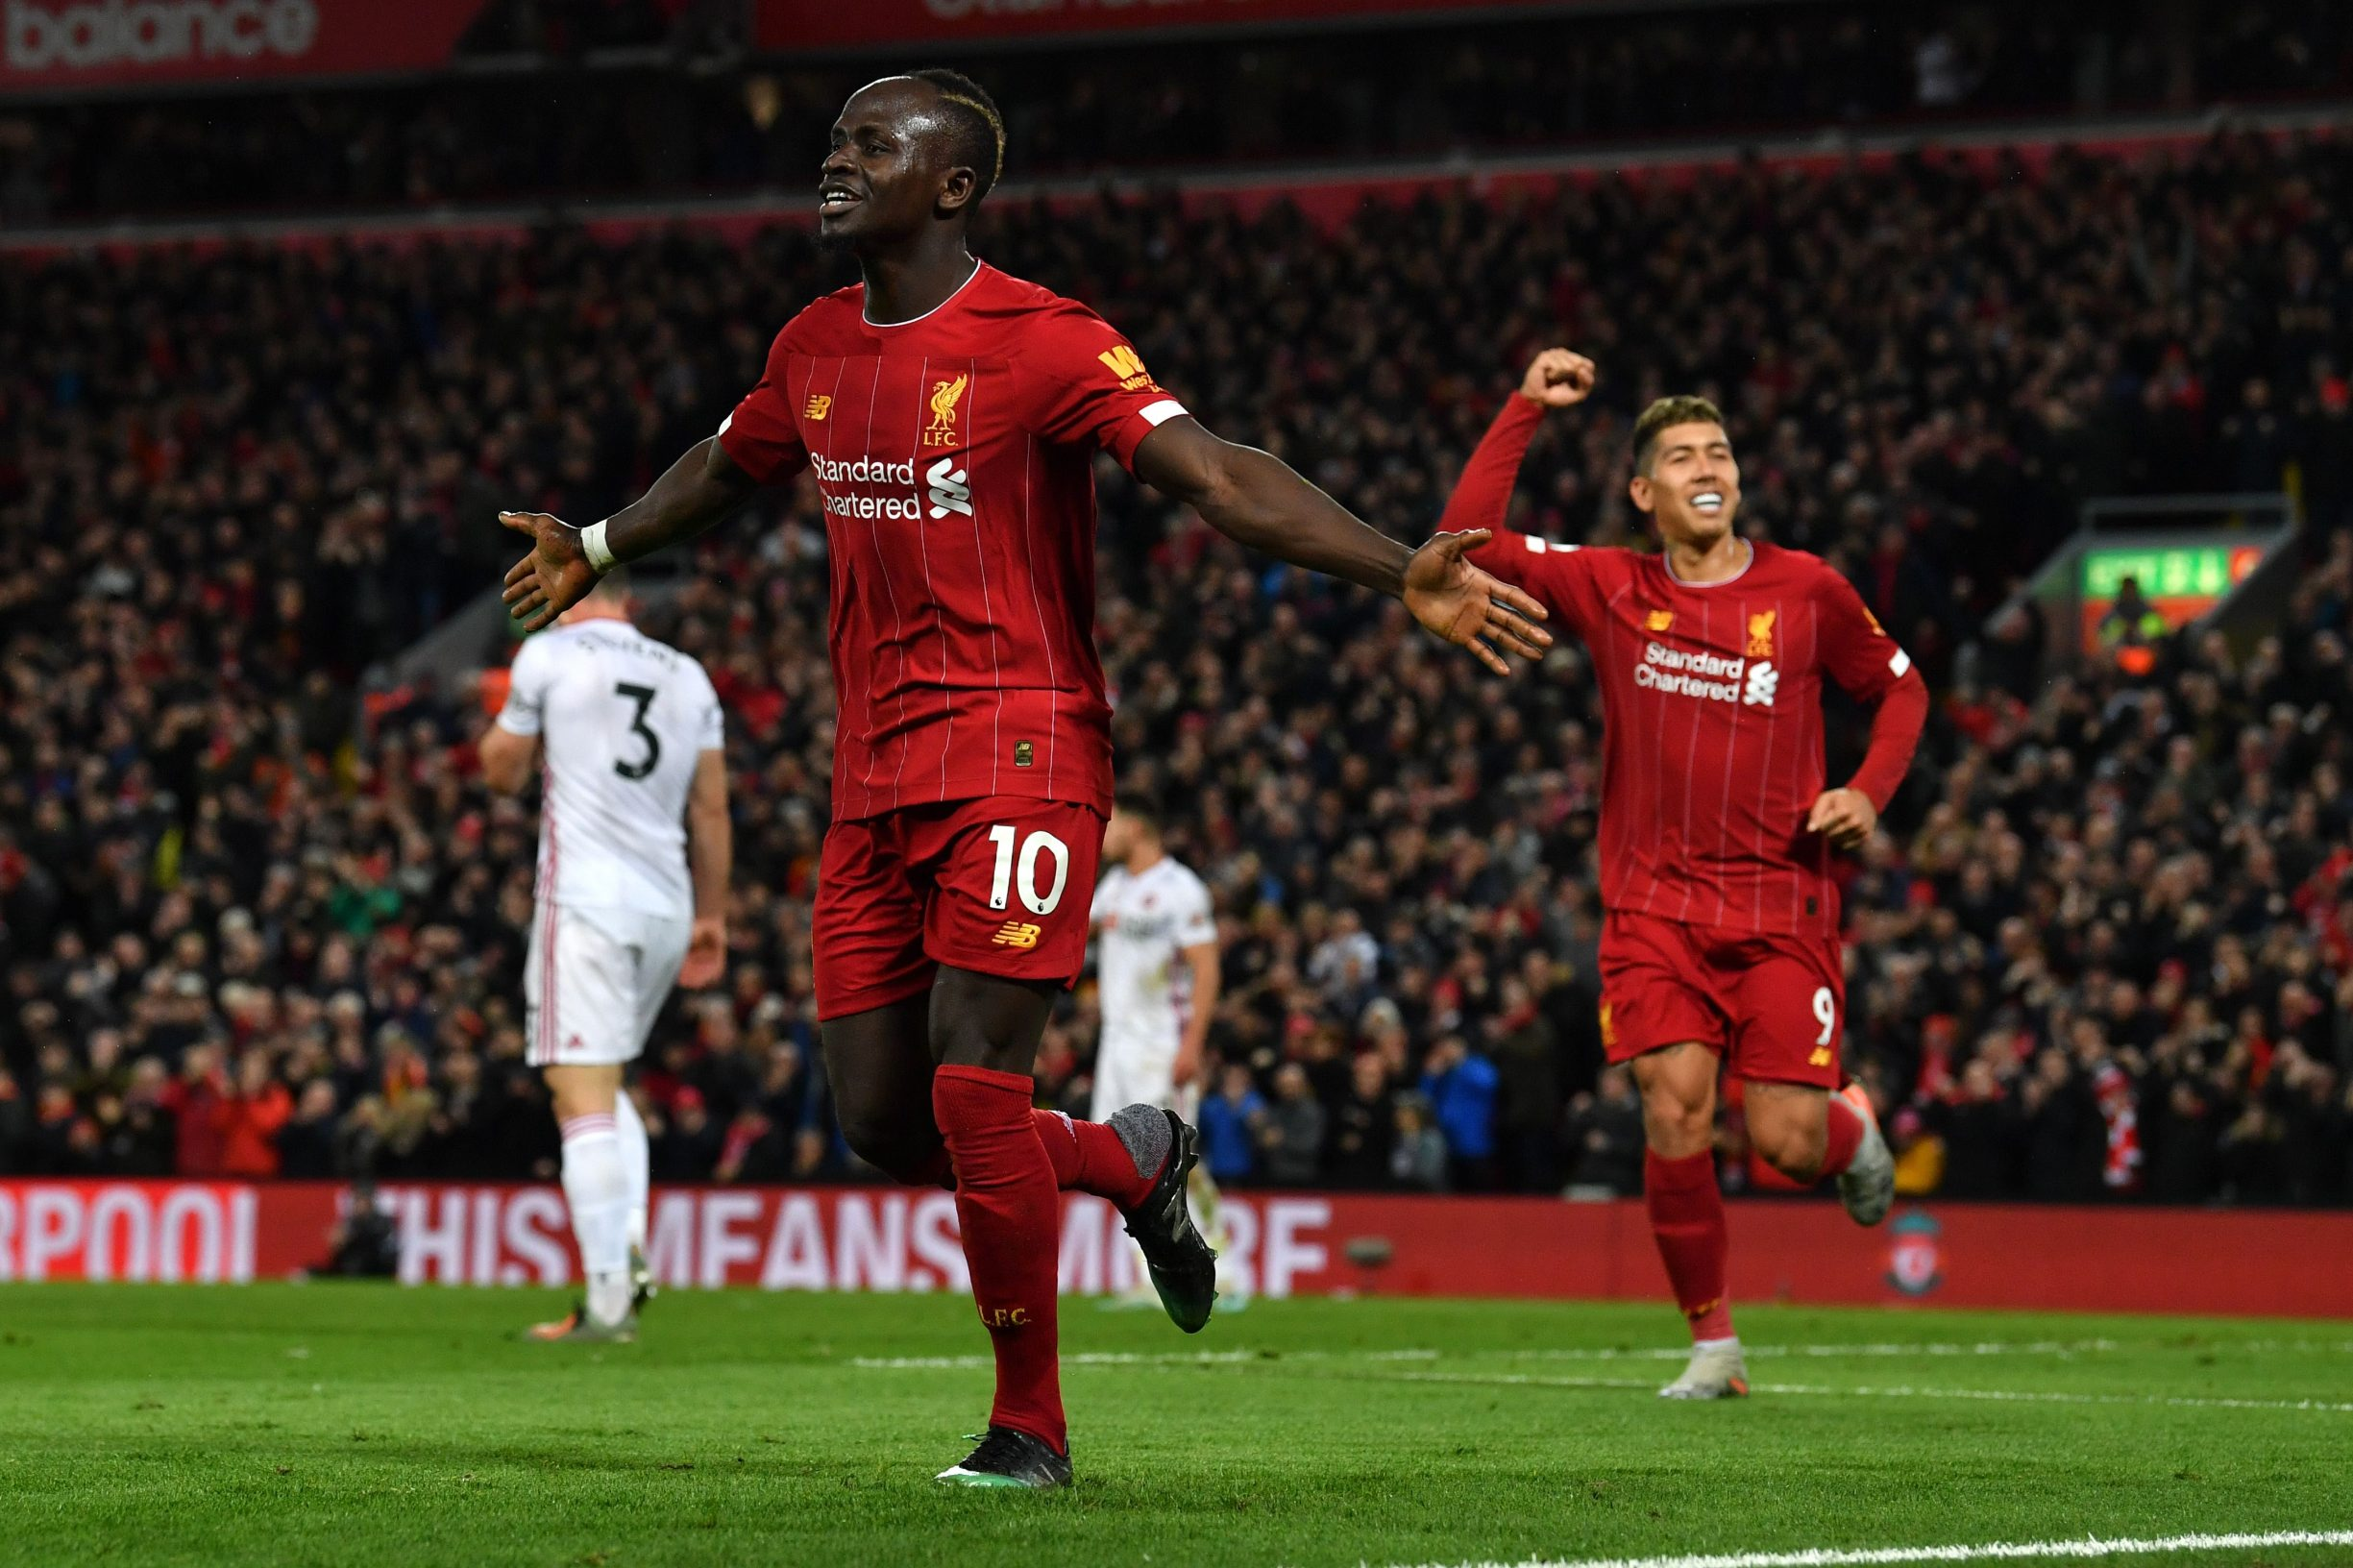 Liverpool's Senegalese striker Sadio Mane (L) celebrates with Liverpool's Brazilian midfielder Roberto Firmino after he scores his team's second goal during the English Premier League football match between Liverpool and Sheffield United at Anfield in Liverpool, north west England on January 2, 2020. (Photo by Paul ELLIS / AFP) / RESTRICTED TO EDITORIAL USE. No use with unauthorized audio, video, data, fixture lists, club/league logos or 'live' services. Online in-match use limited to 120 images. An additional 40 images may be used in extra time. No video emulation. Social media in-match use limited to 120 images. An additional 40 images may be used in extra time. No use in betting publications, games or single club/league/player publications. /